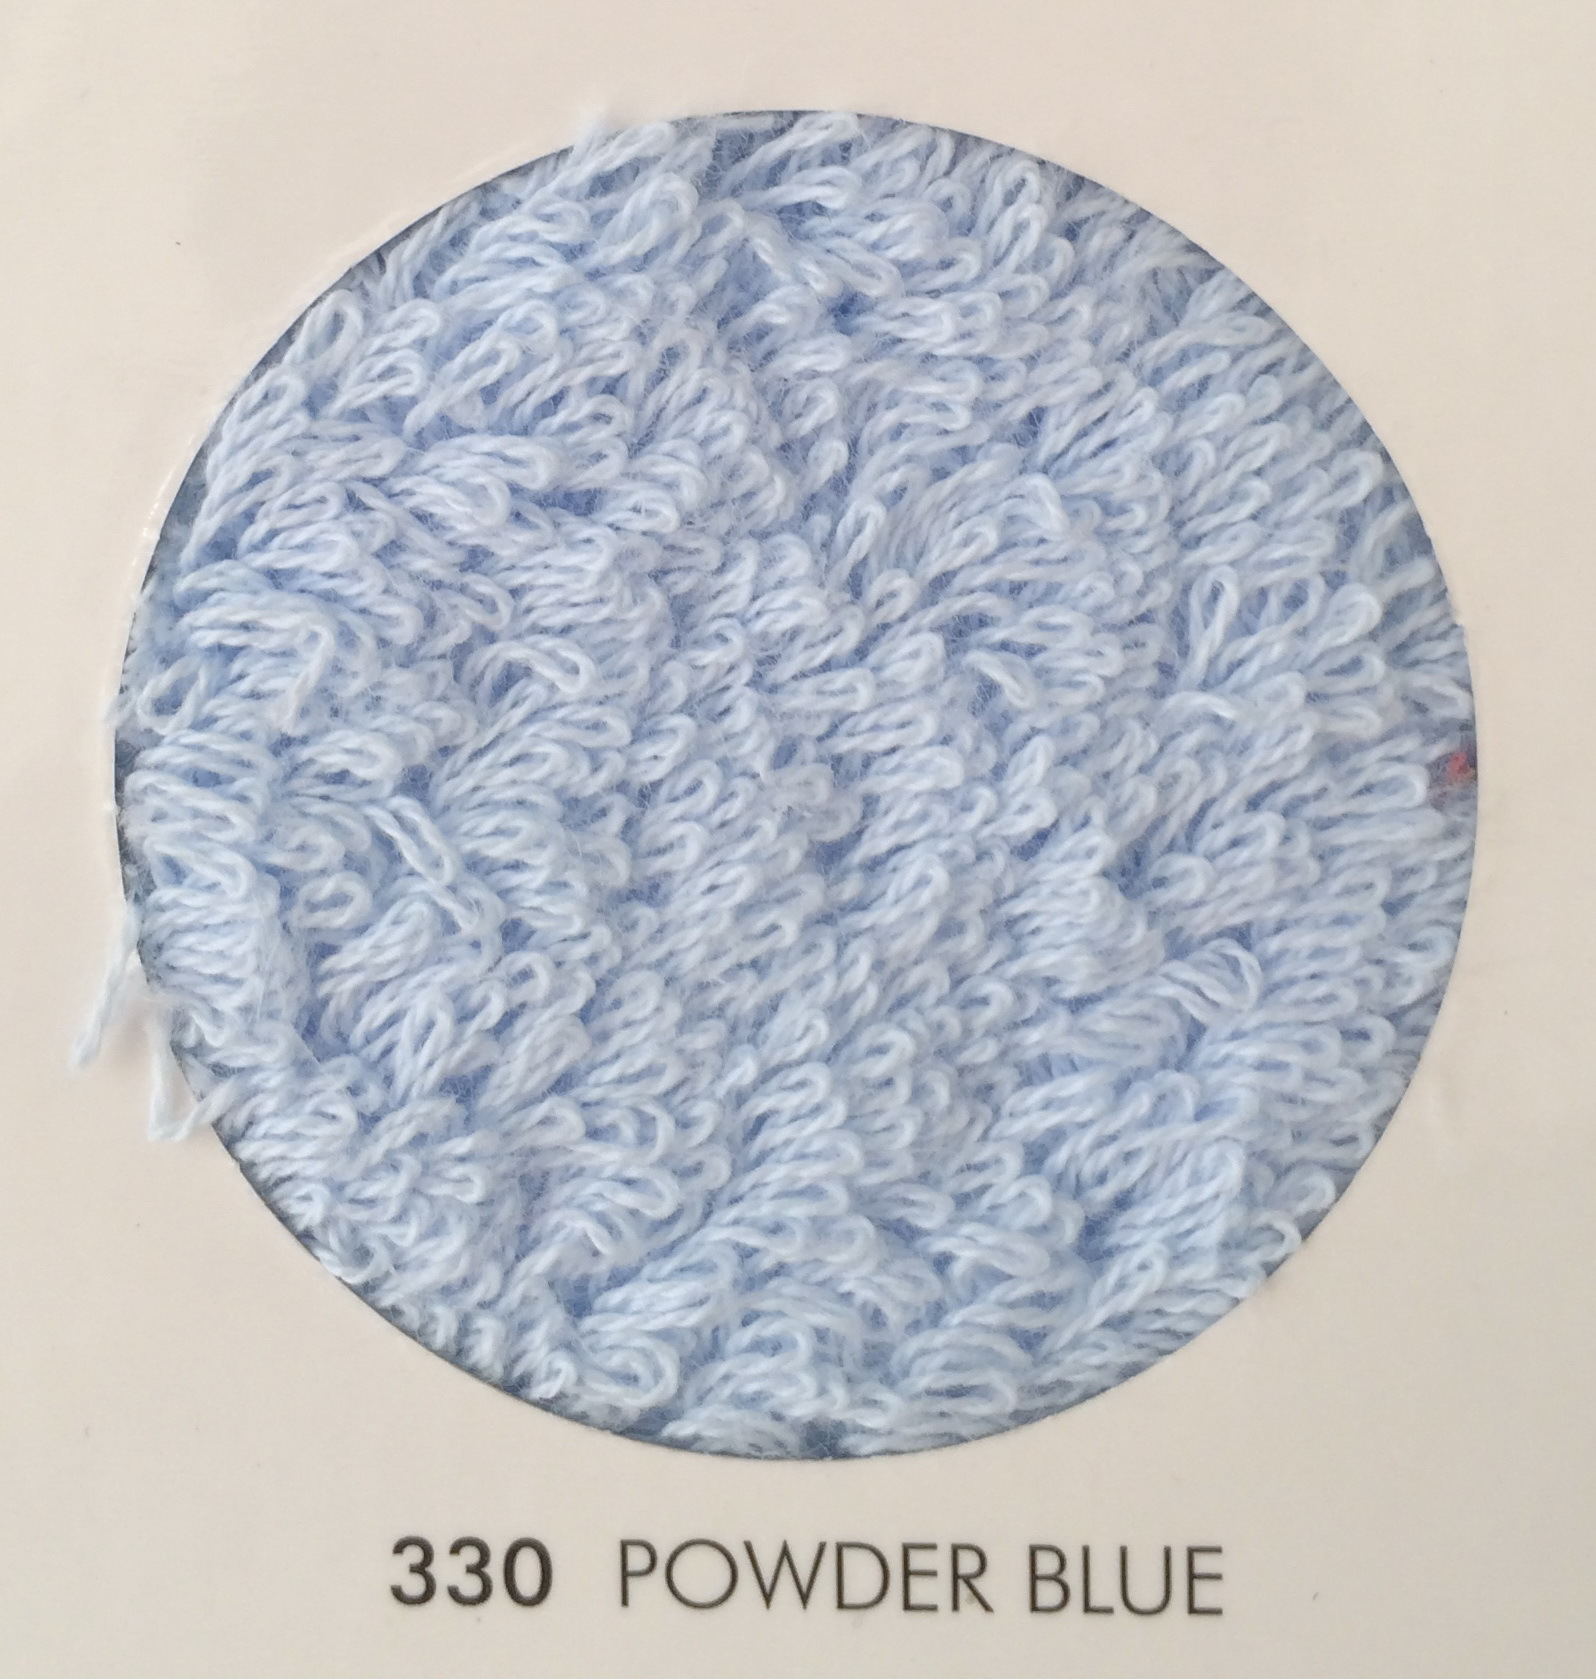 Коврики для унитаза Коврик для унитаза 60х60 Abyss & Habidecor Must 330 Powder Blue elitnyy-kovrik-dlya-unitaza-must-330-powder-blue-ot-abyss-habidecor-portugaliya.jpg